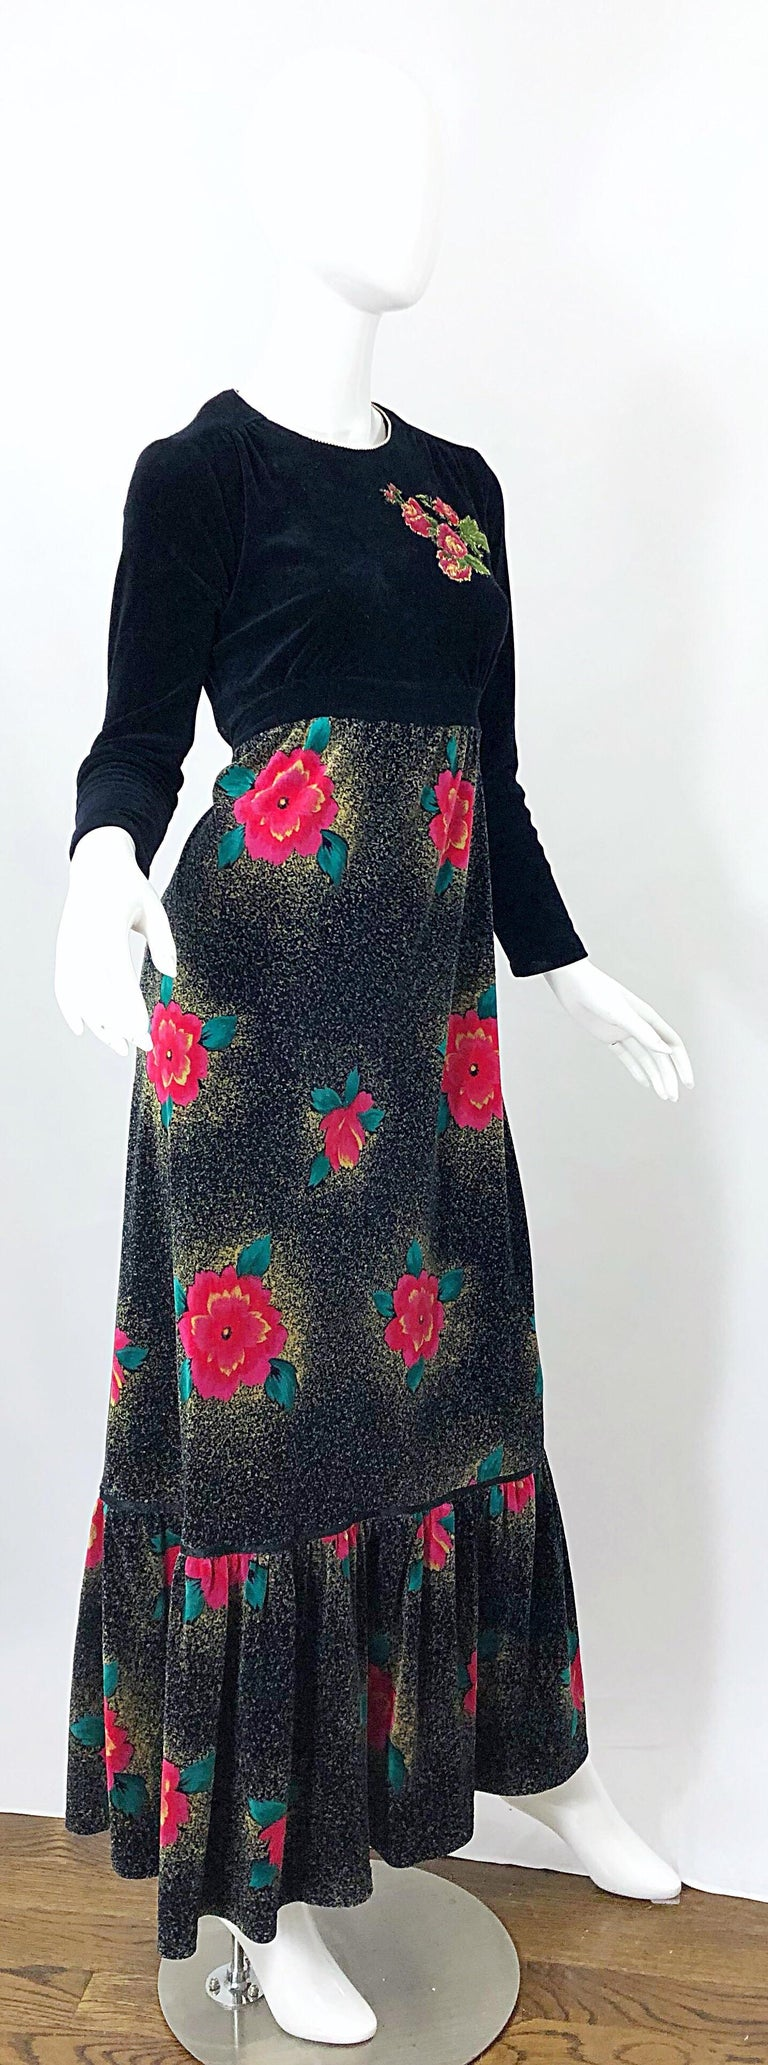 1970s Poinsettia Print Embroidered Beaded Velvet Velour Holiday Maxi Dress Gown For Sale 4